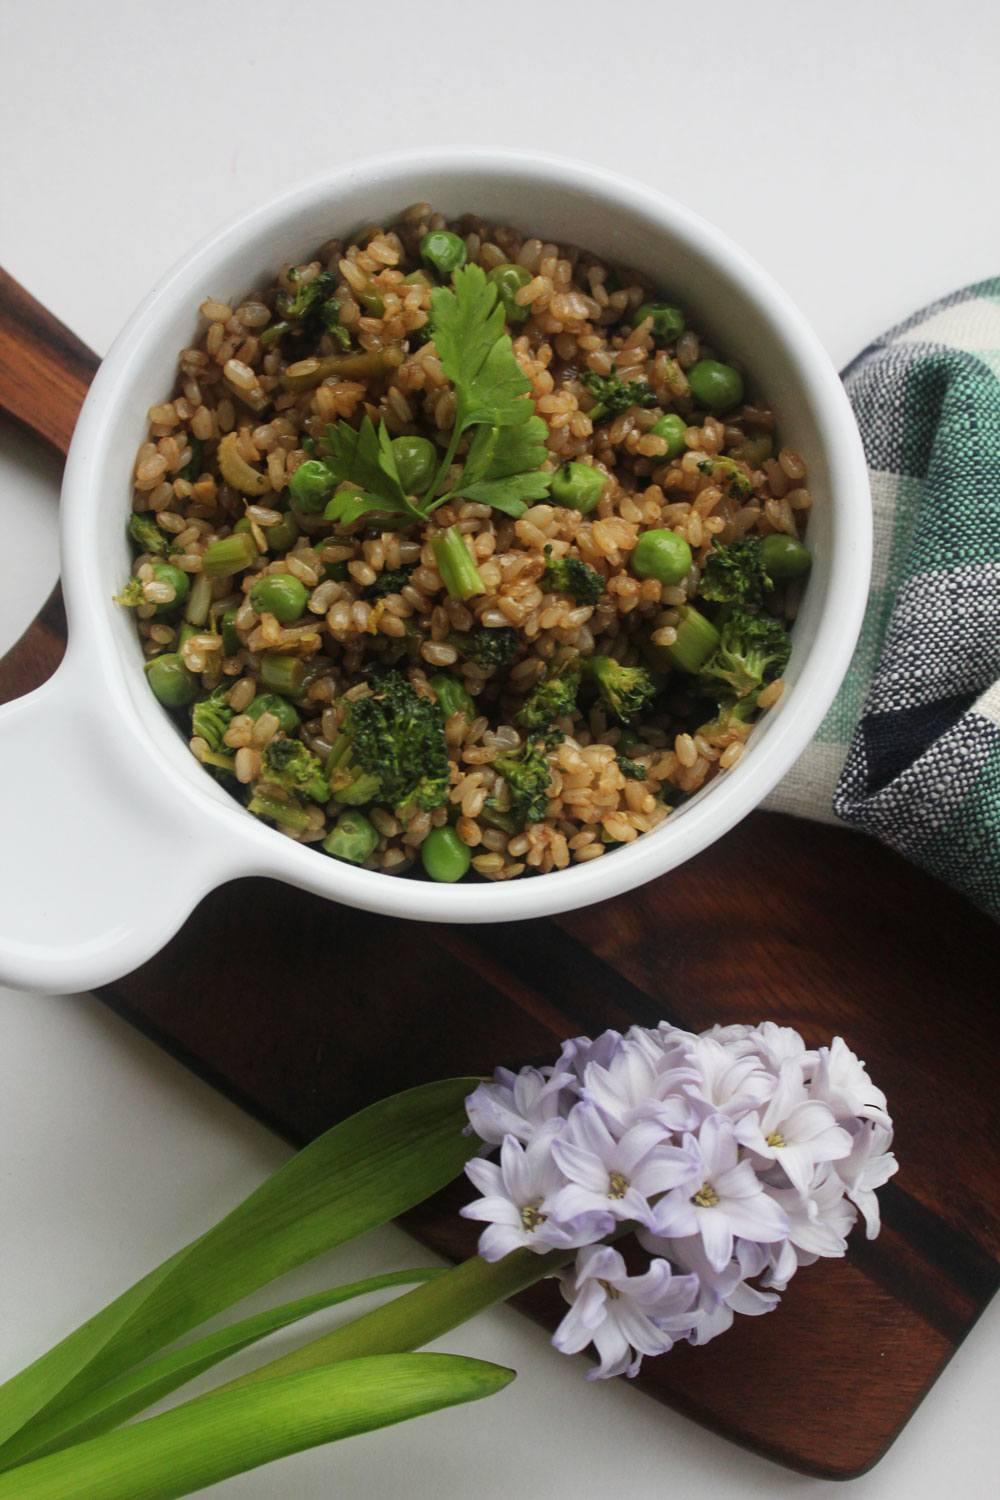 Recipe: Homemade Take On Green Fried Rice Takeout   PainDoctor.com